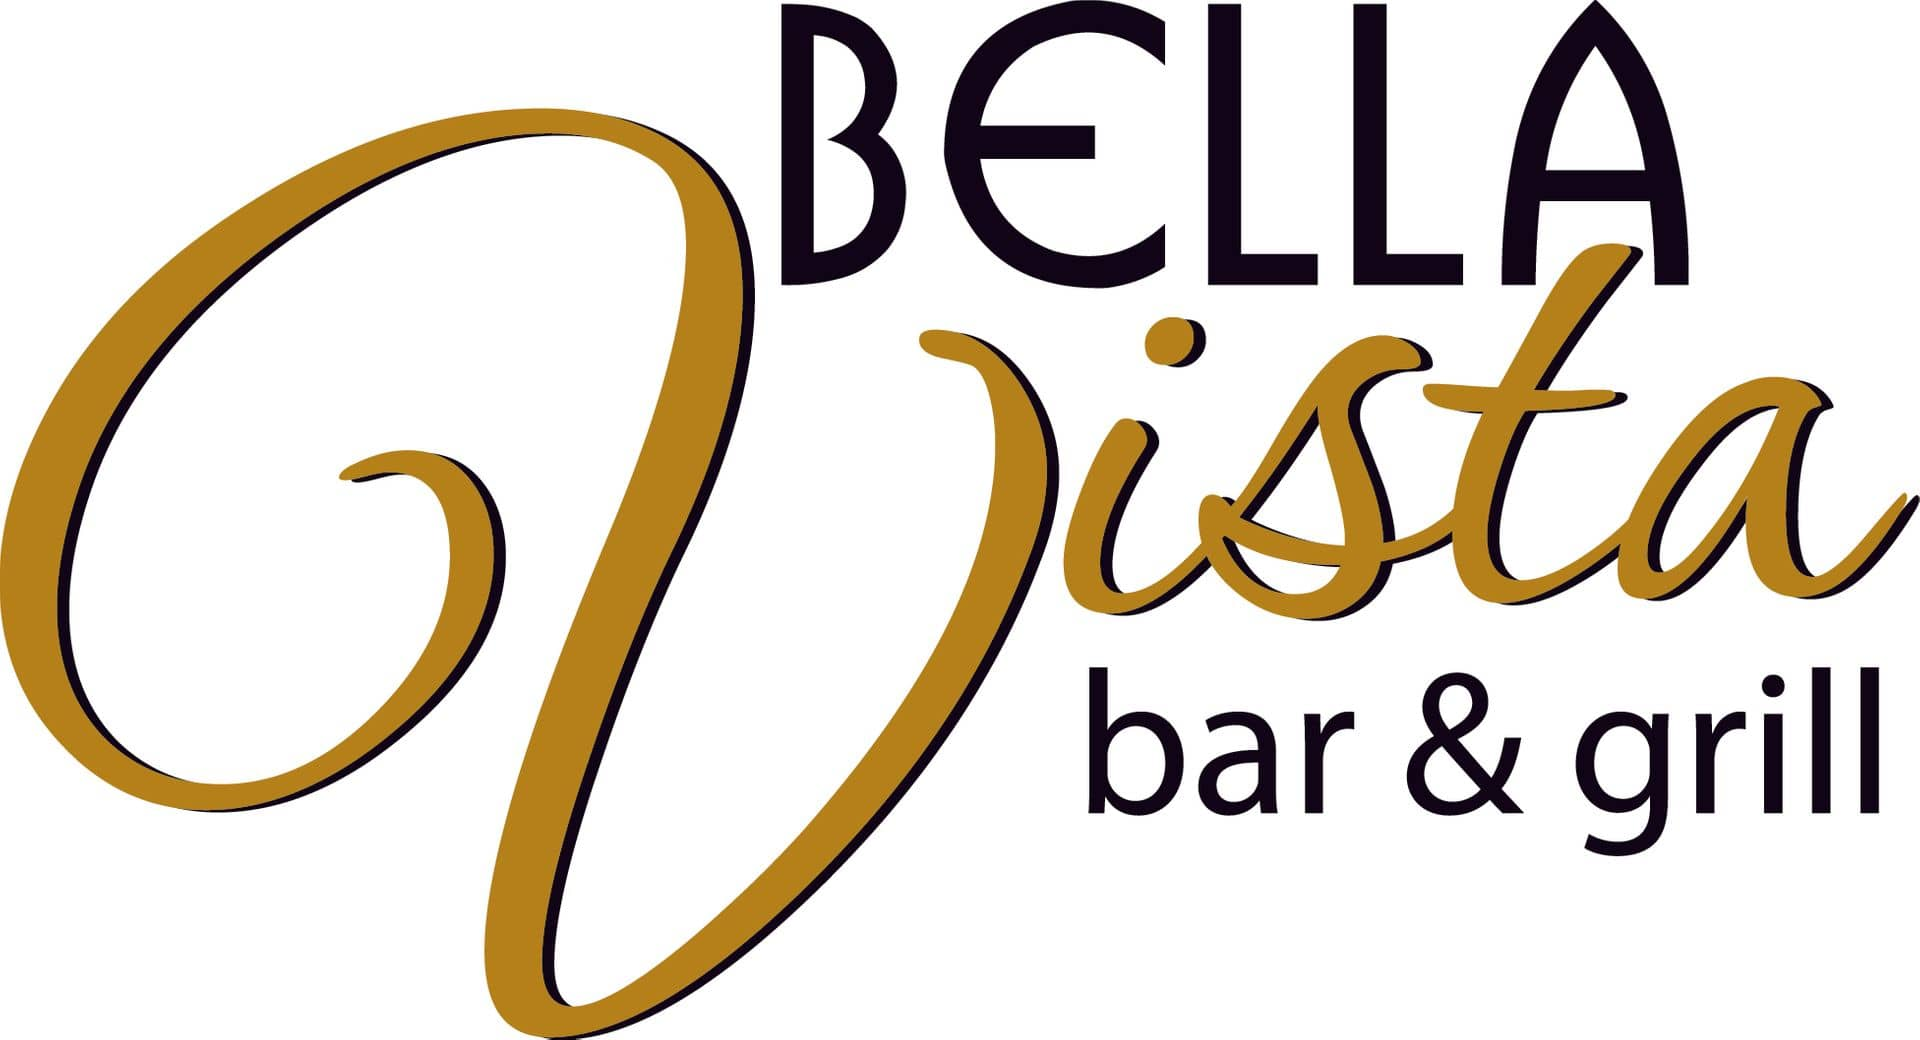 Bella Vista Bar & Grill image